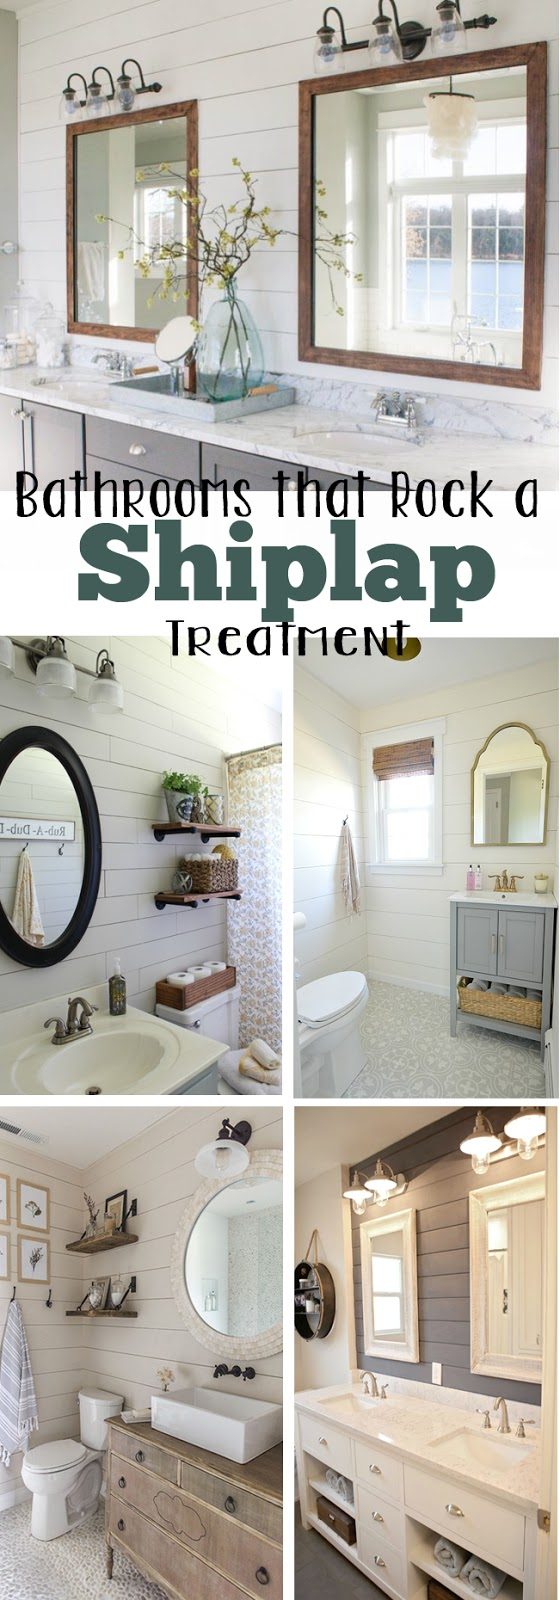 Shiplap treatment in bathrooms